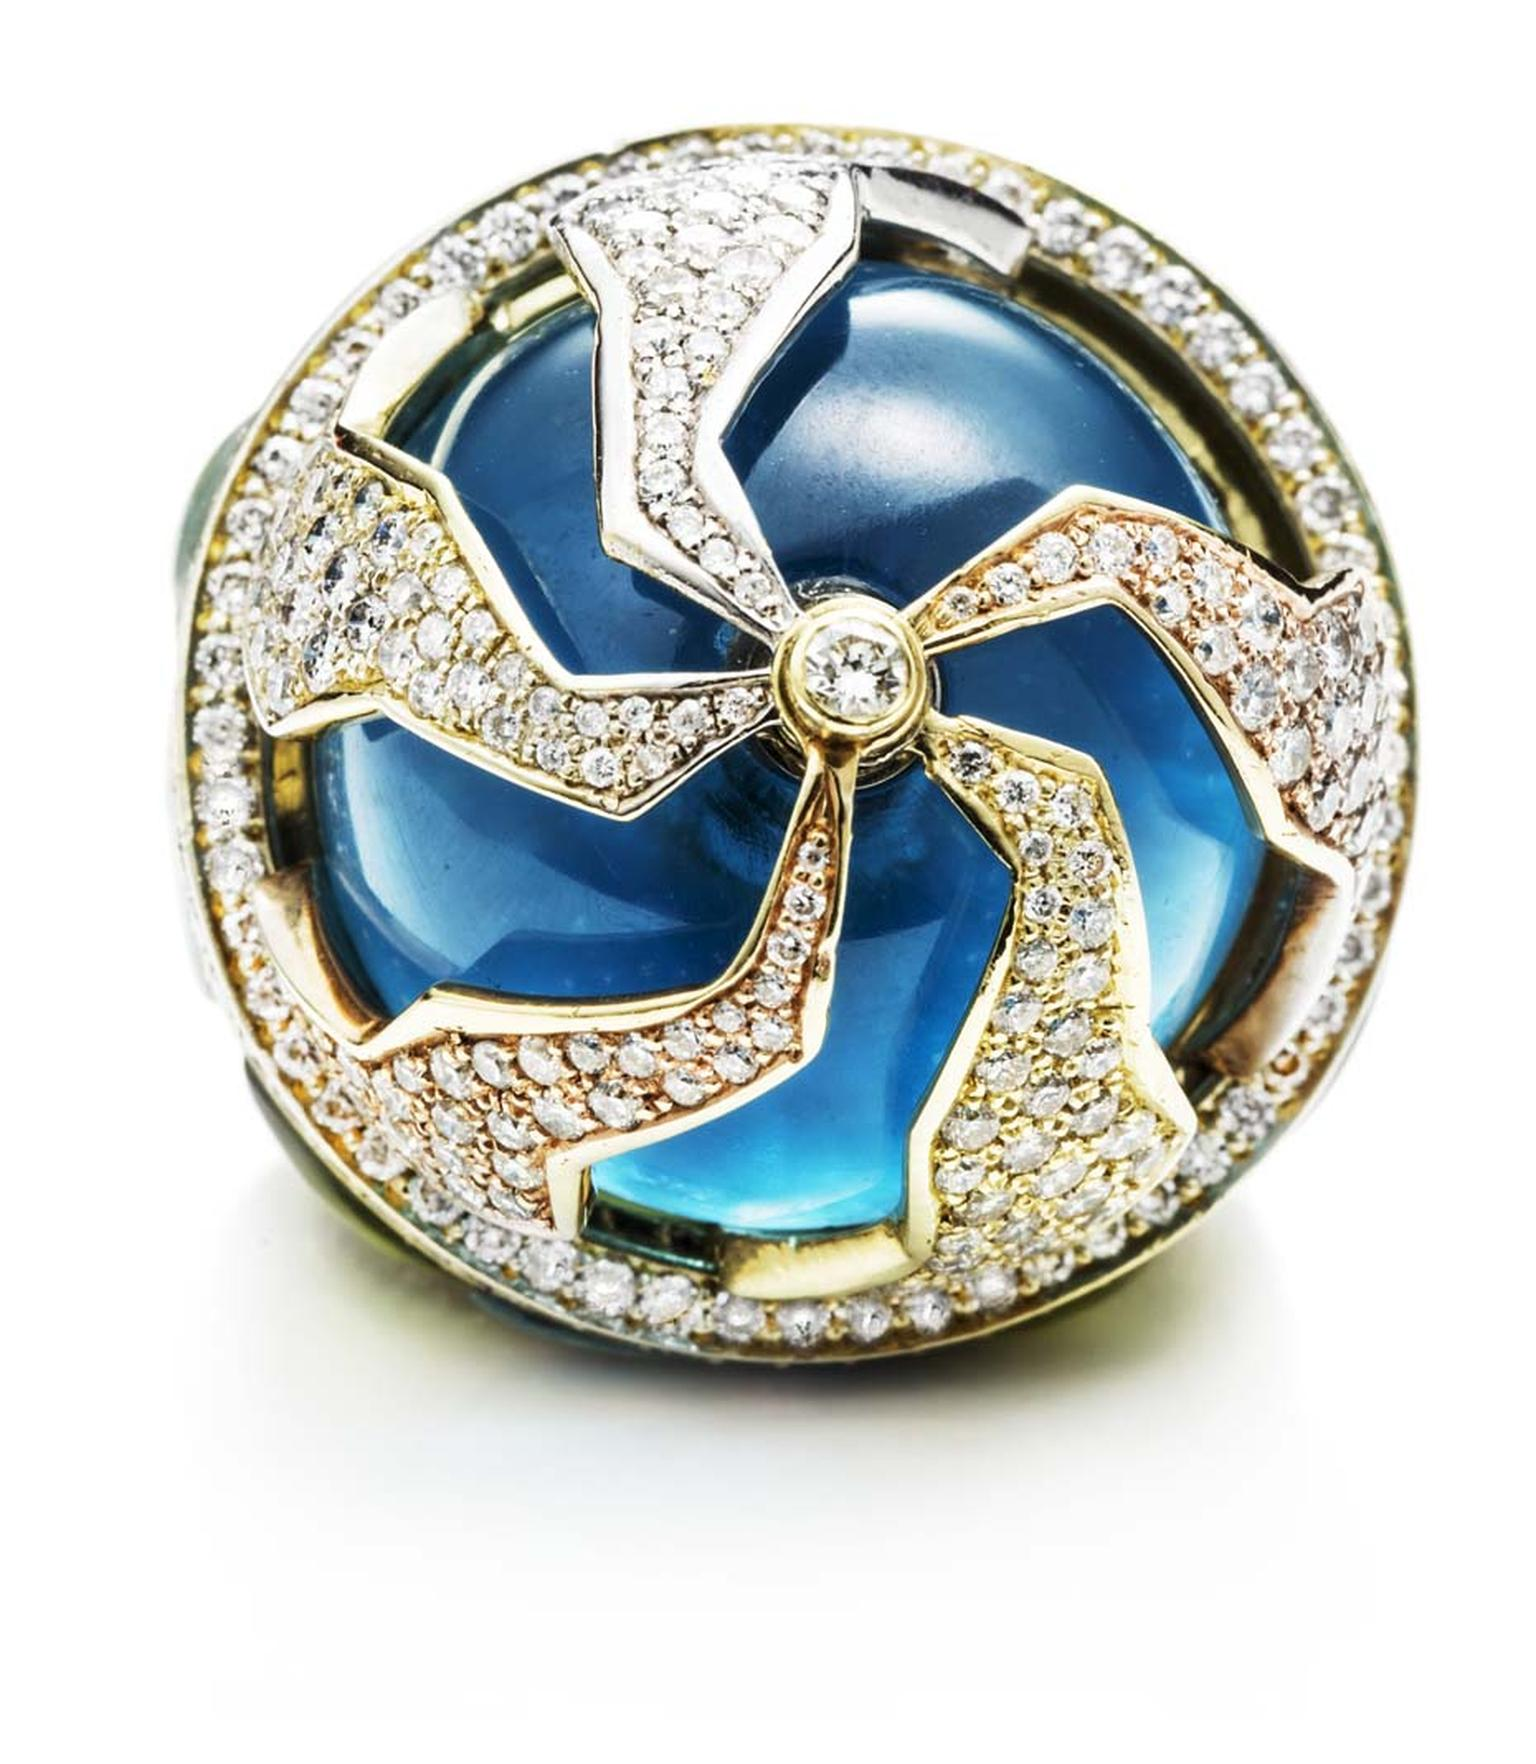 Kara Ross' Pangea ring has five moveable pieces that move independently above the blue topaz cabochon